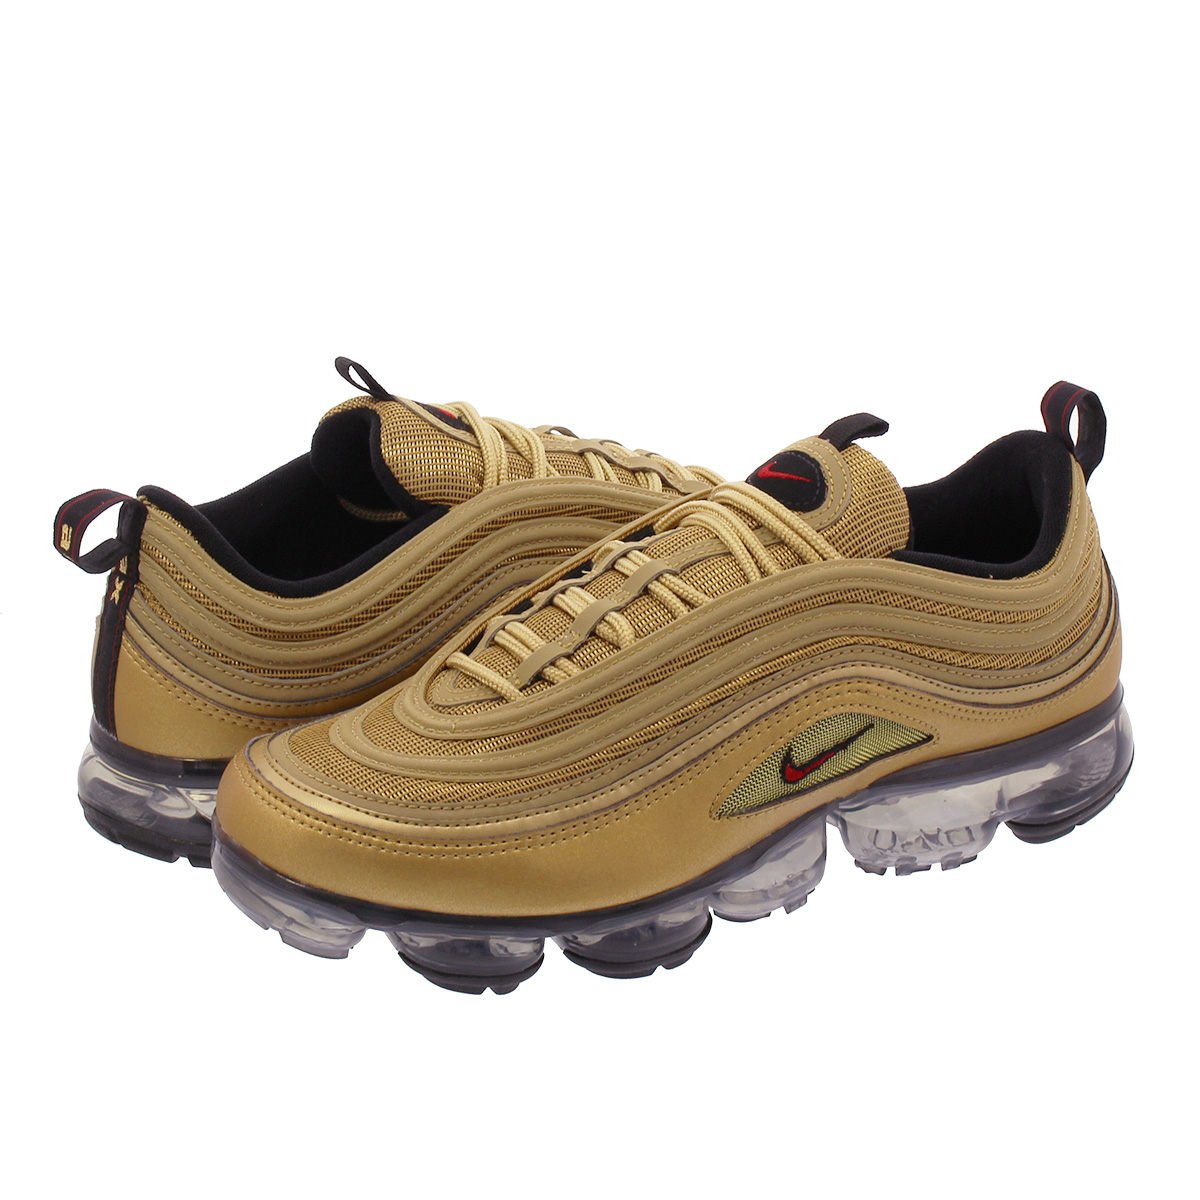 best service 7e2f2 3a4a7 NIKE AIR VAPORMAX 97 Nike air vapor max 97 METALLIC GOLD/VARSITY  RED/BLACK/WHITE aj7291-700